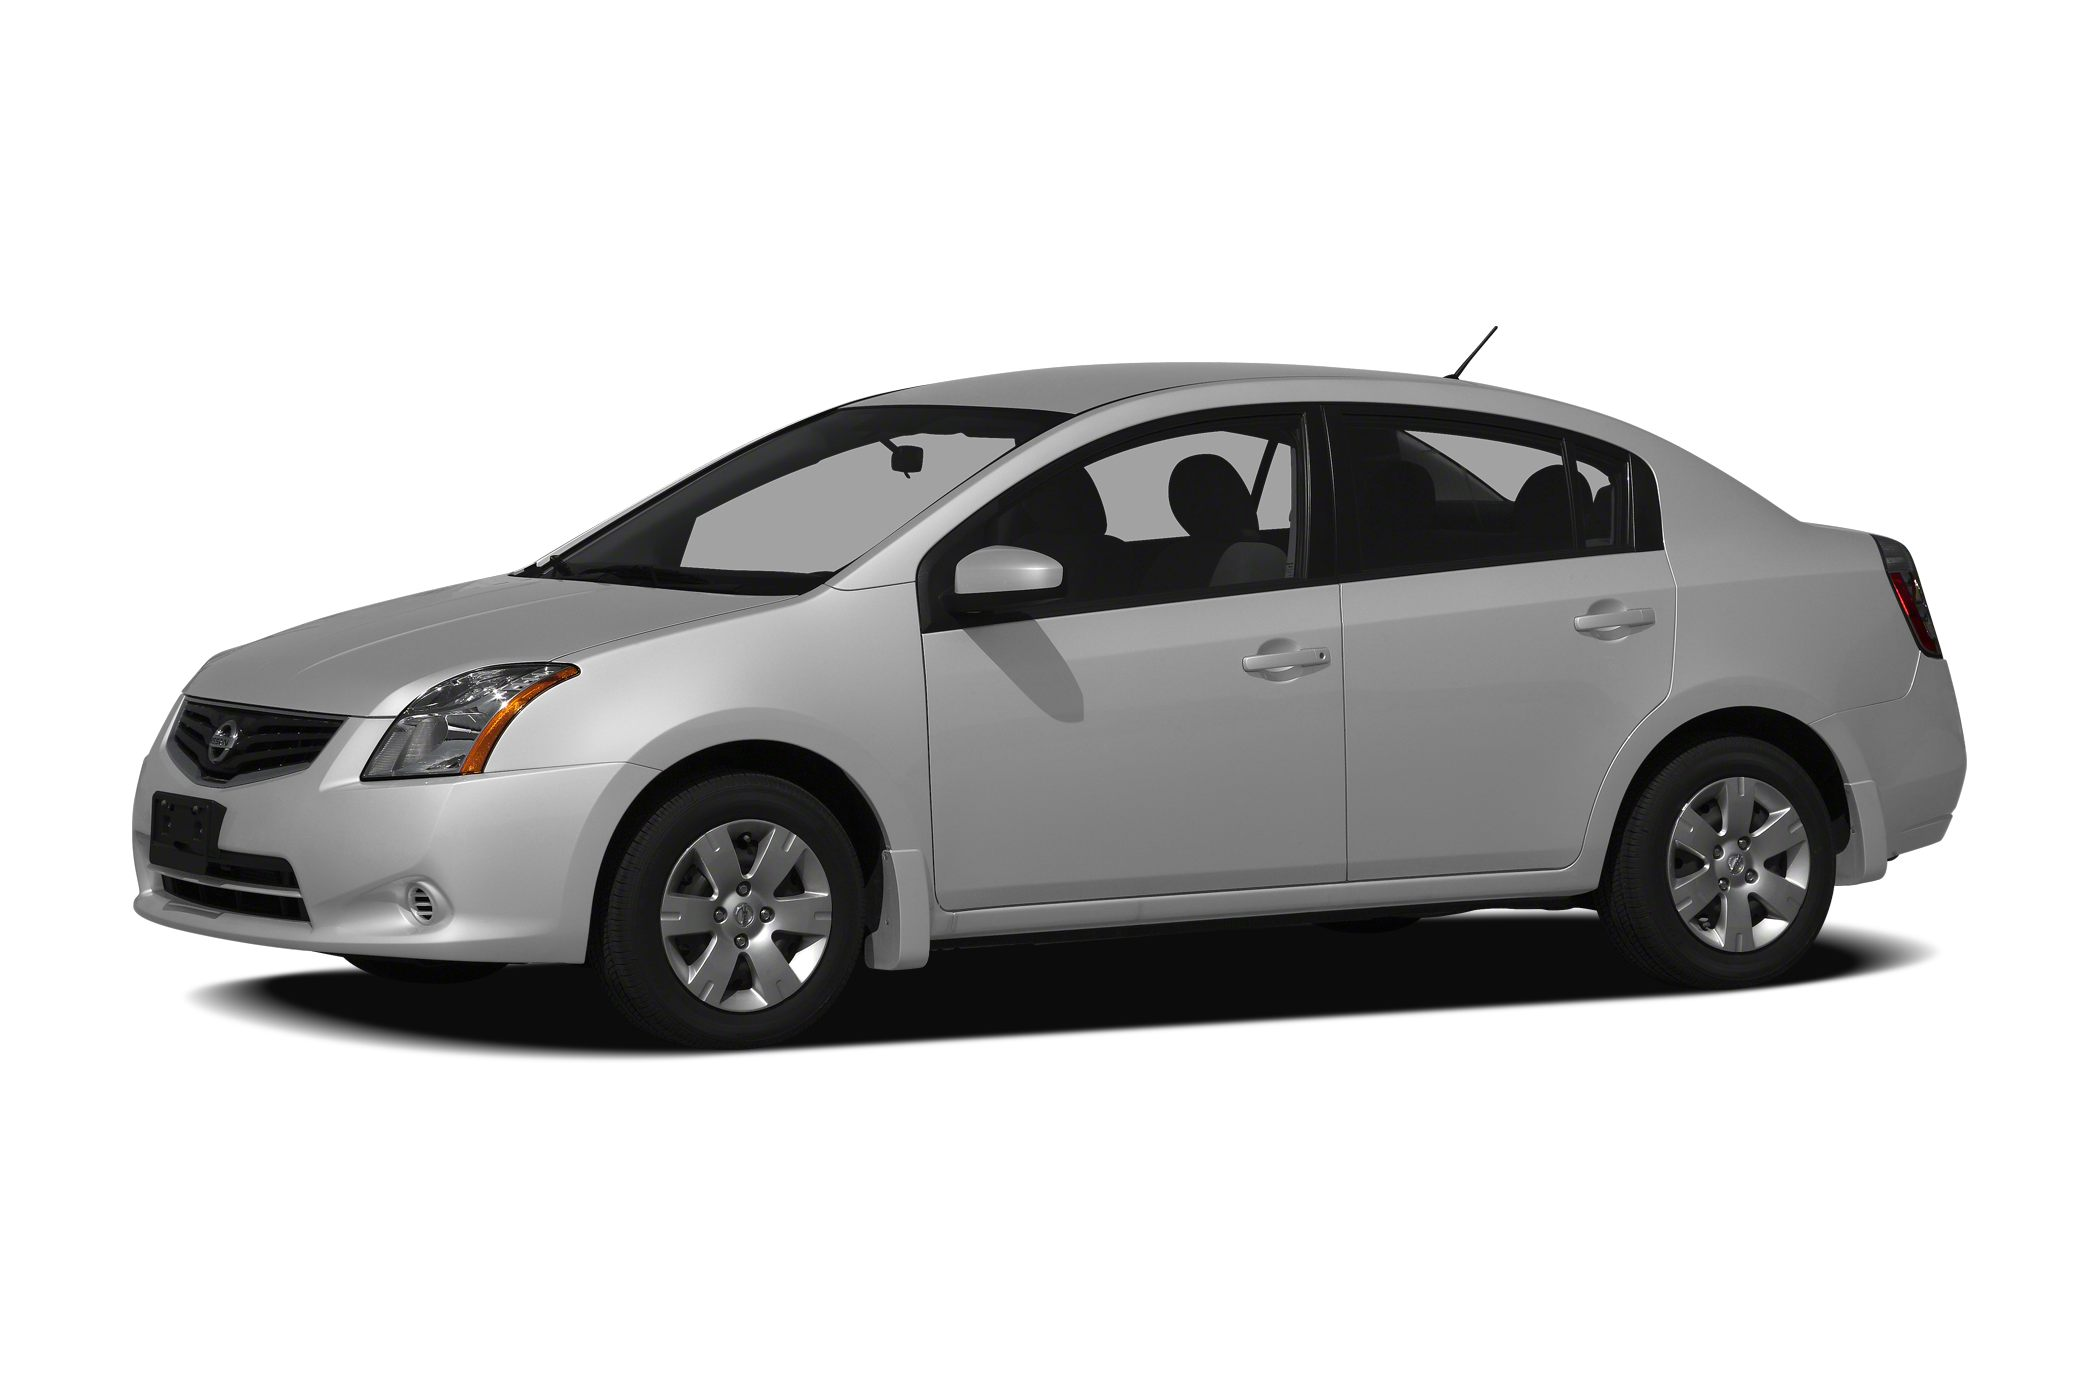 2012 Nissan Sentra 20 SL In this 2012 Nissan Sentra 20 SL enjoy every drive with prime features